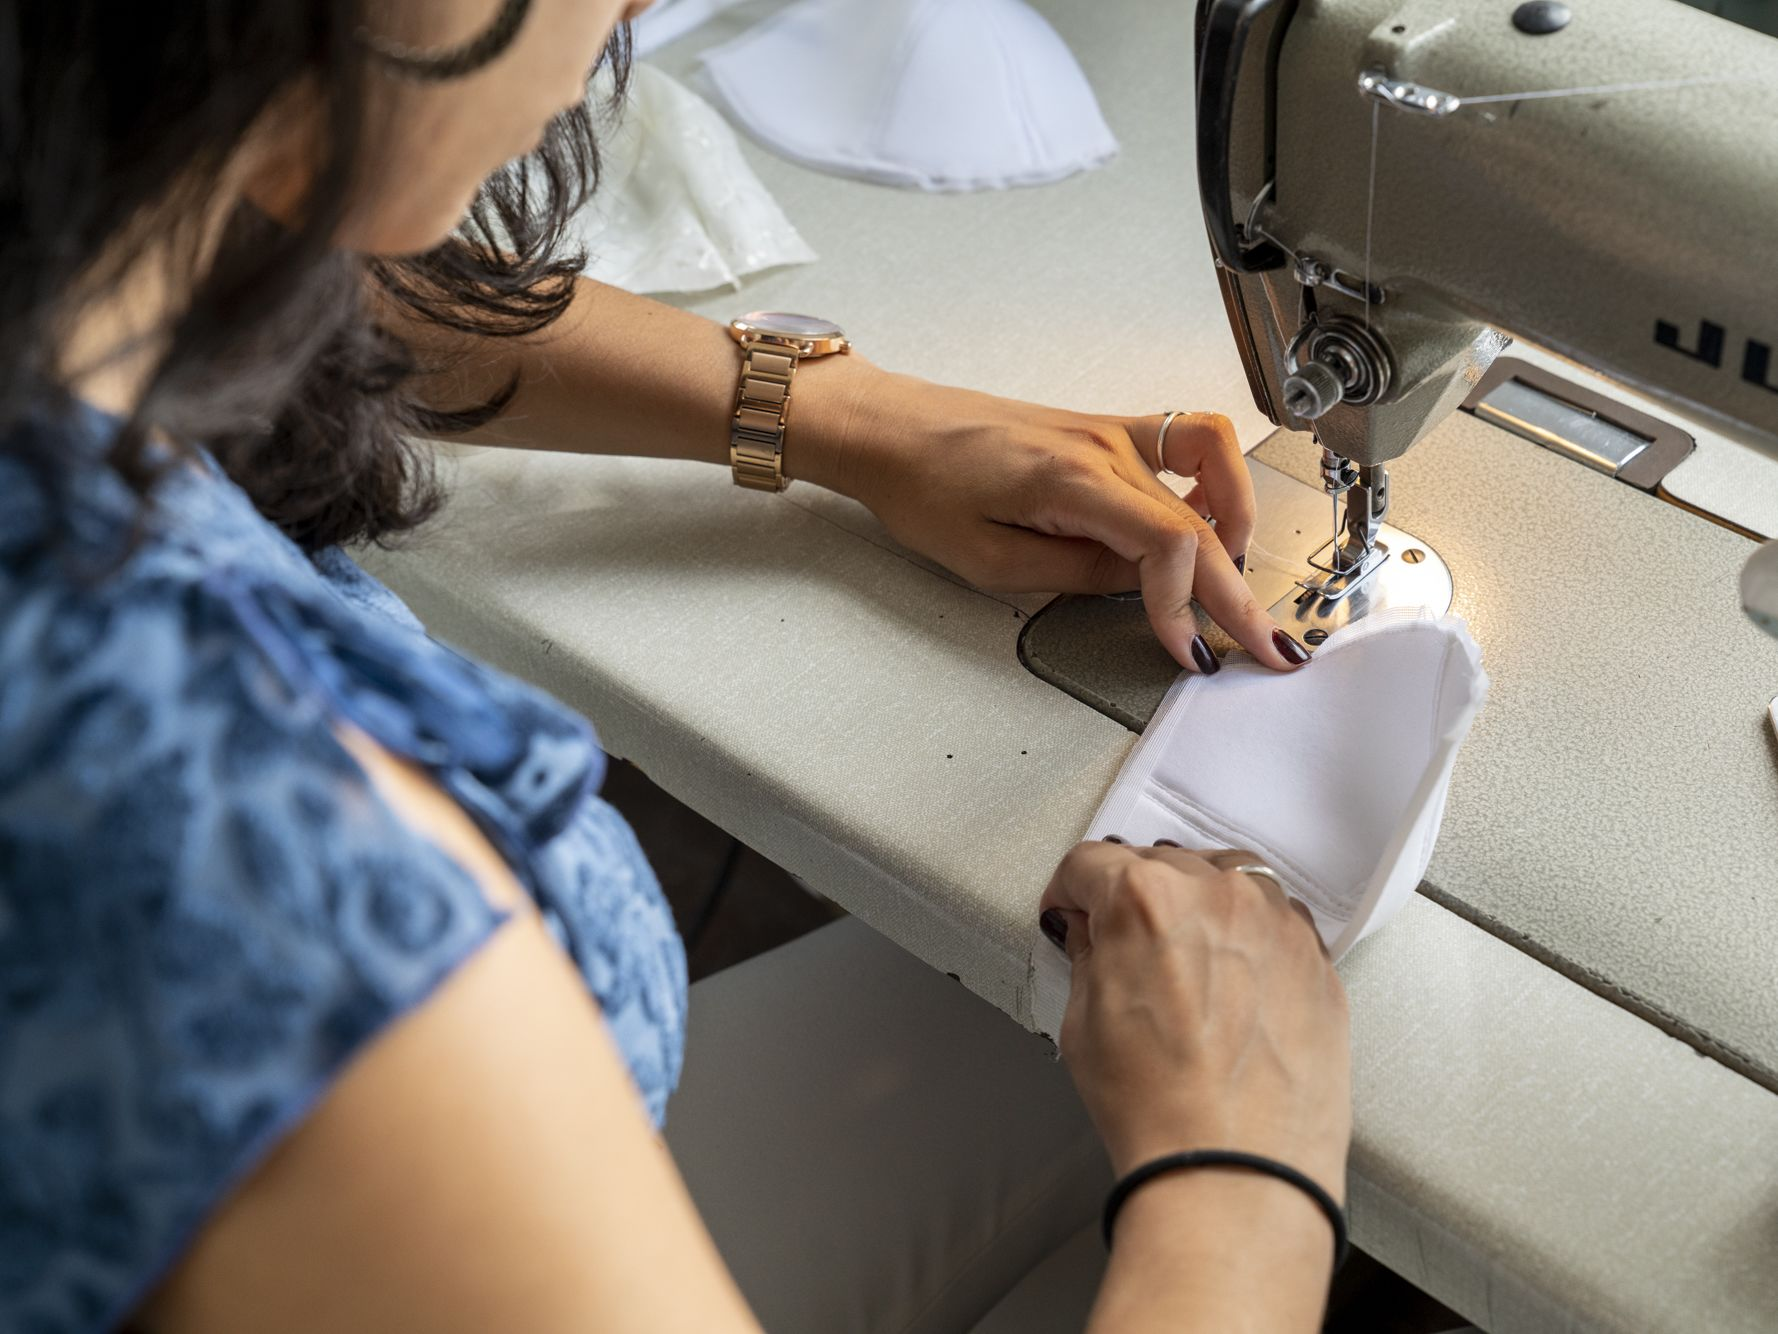 Structured bra making student working at sewing machine